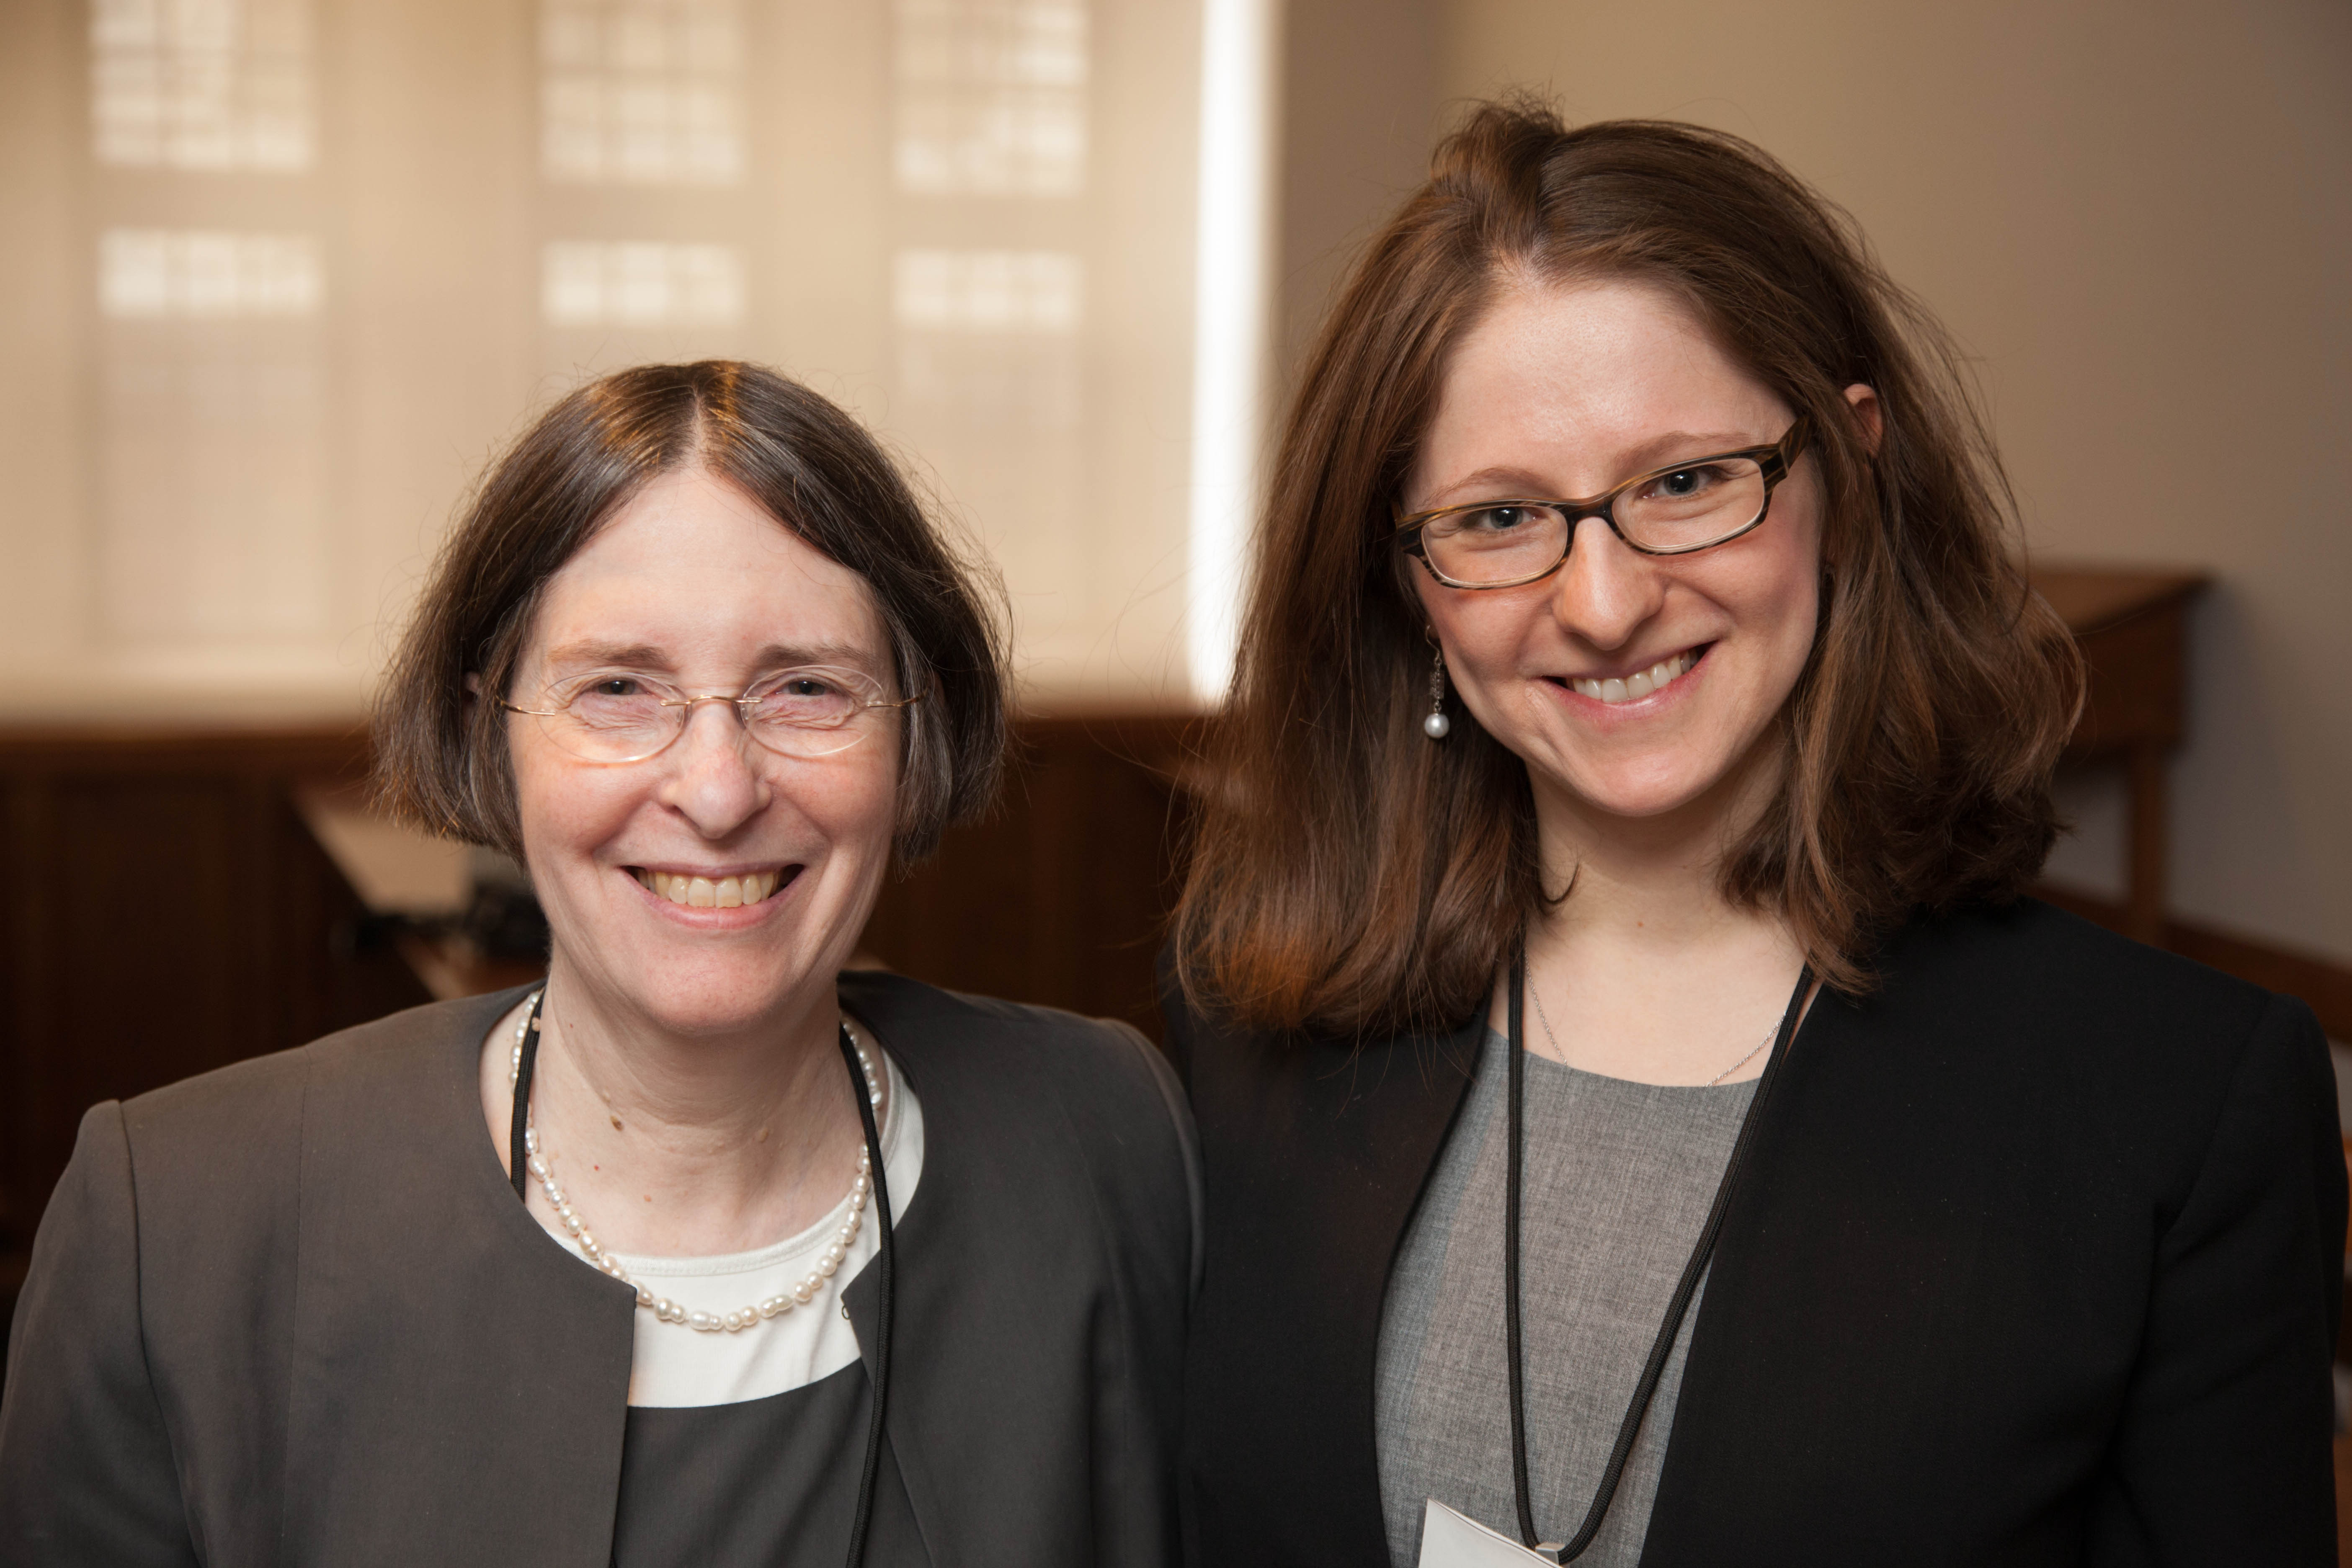 YLS Prof. and Center Dir. Roberta Romano '80 and Natalya Shnitser '09